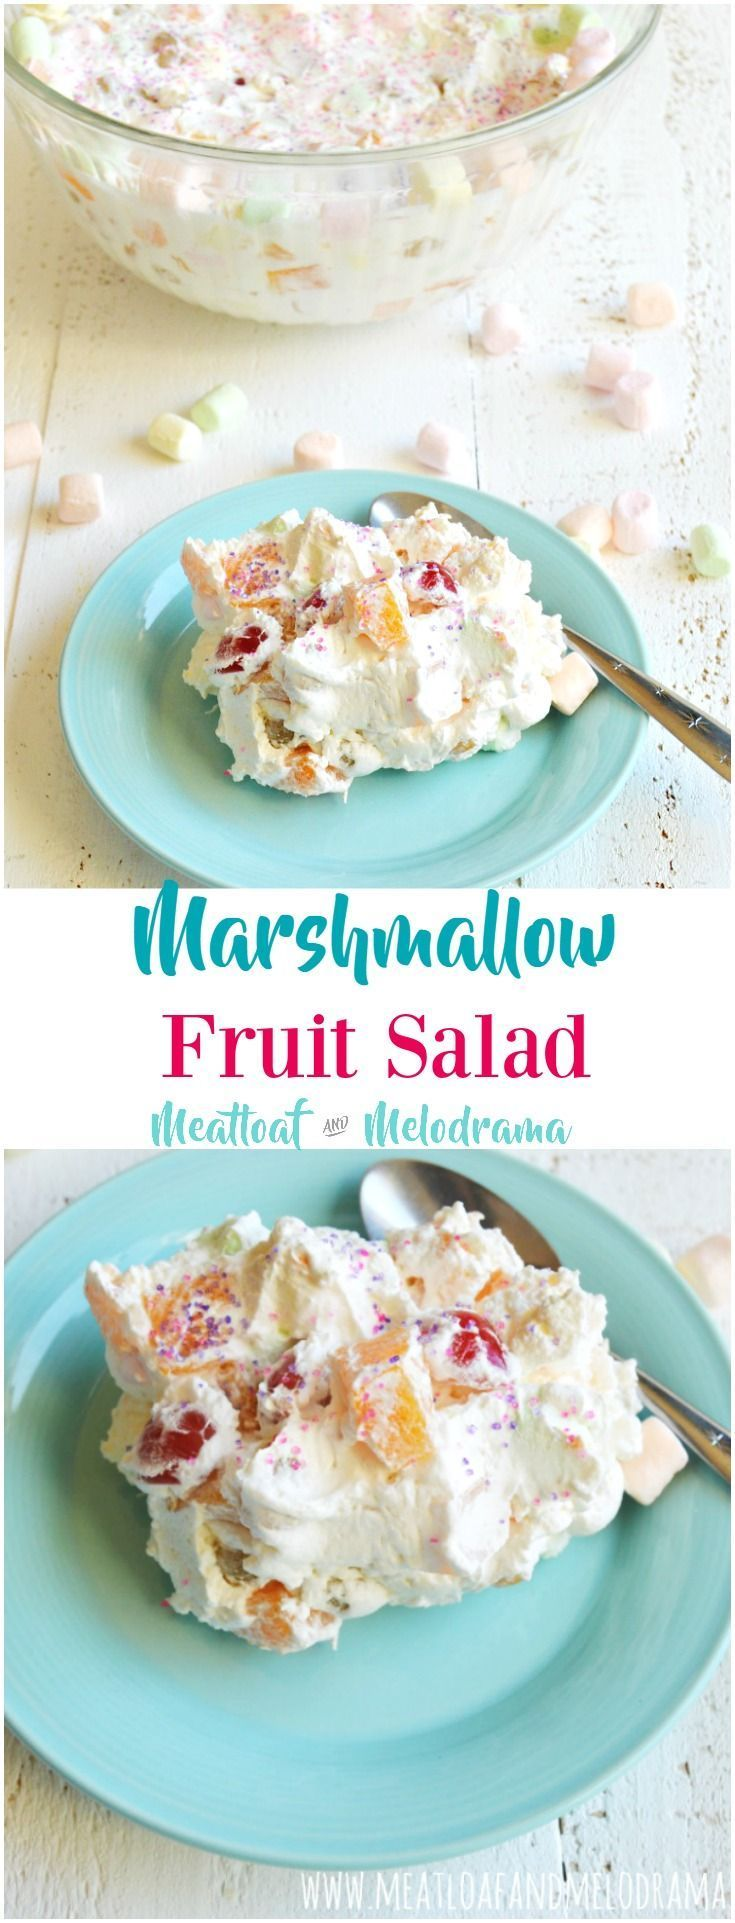 Jello salad with marshmallow recipes